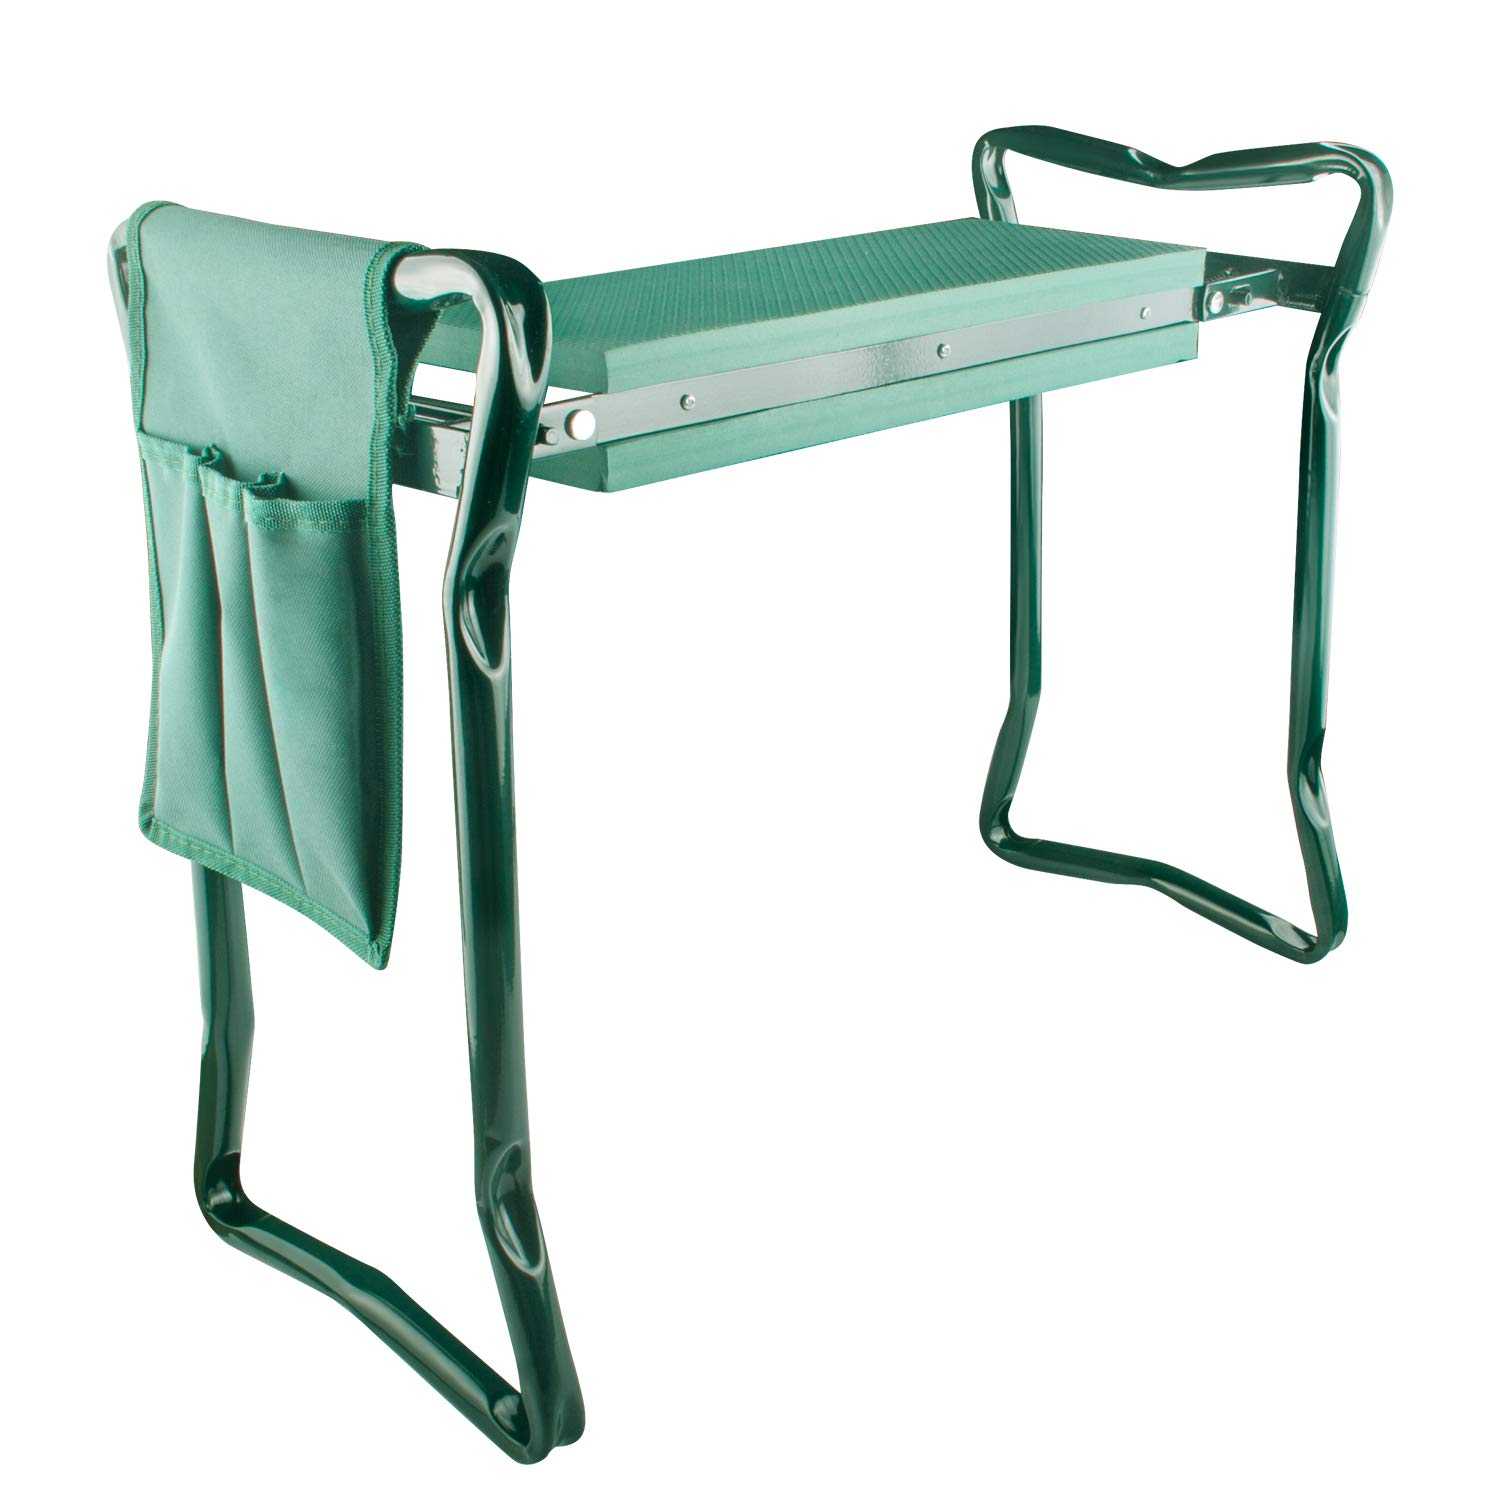 Fancy Buying Garden Kneeler and Seat - Foldable Stool for Ease of Storage - EVA Foam Pad - Sturdy and Lightweight - Bench Comes with A Free Tool Pouch!